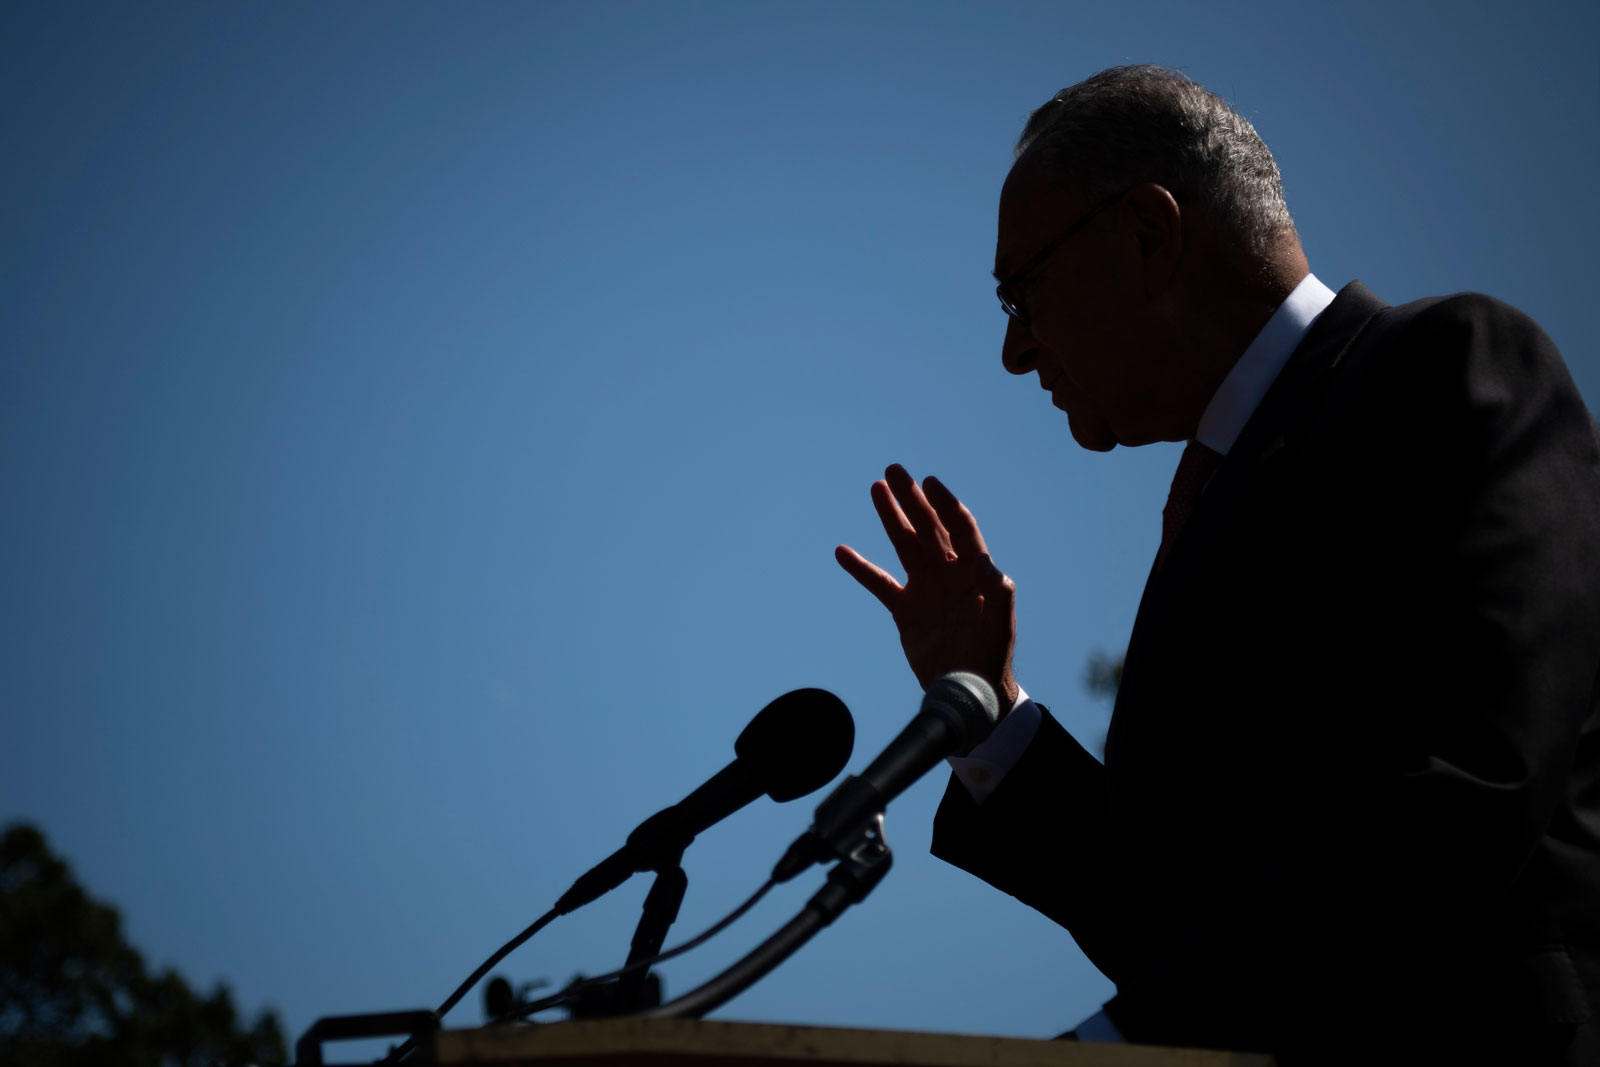 Senate Minority Leader Chuck Schumer speaks at a news conference on Capitol Hill in Washington on Tuesday, September 22.